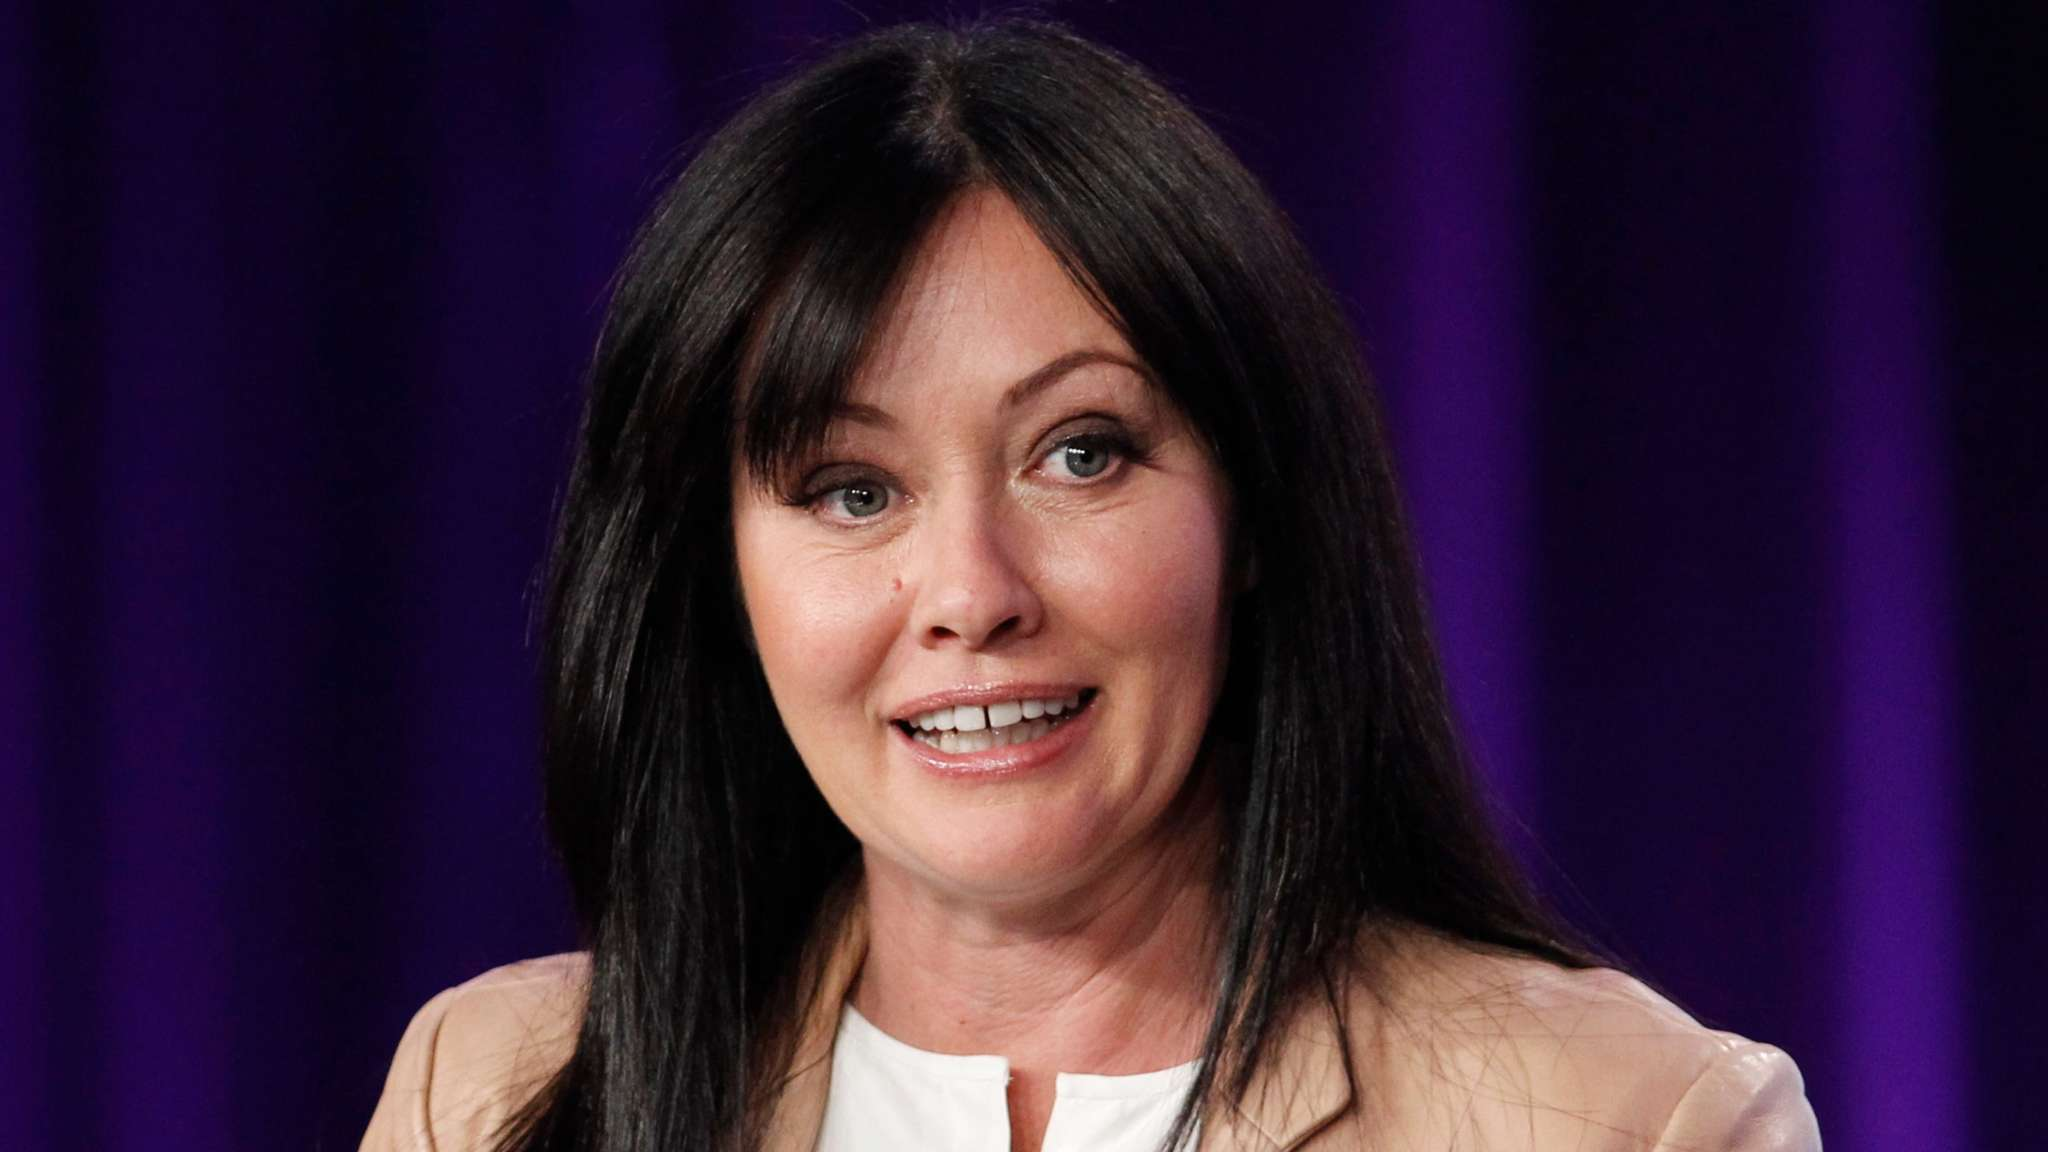 Shannen Doherty Gives Her Opinion On Charmed Feud Between Old And New Cast